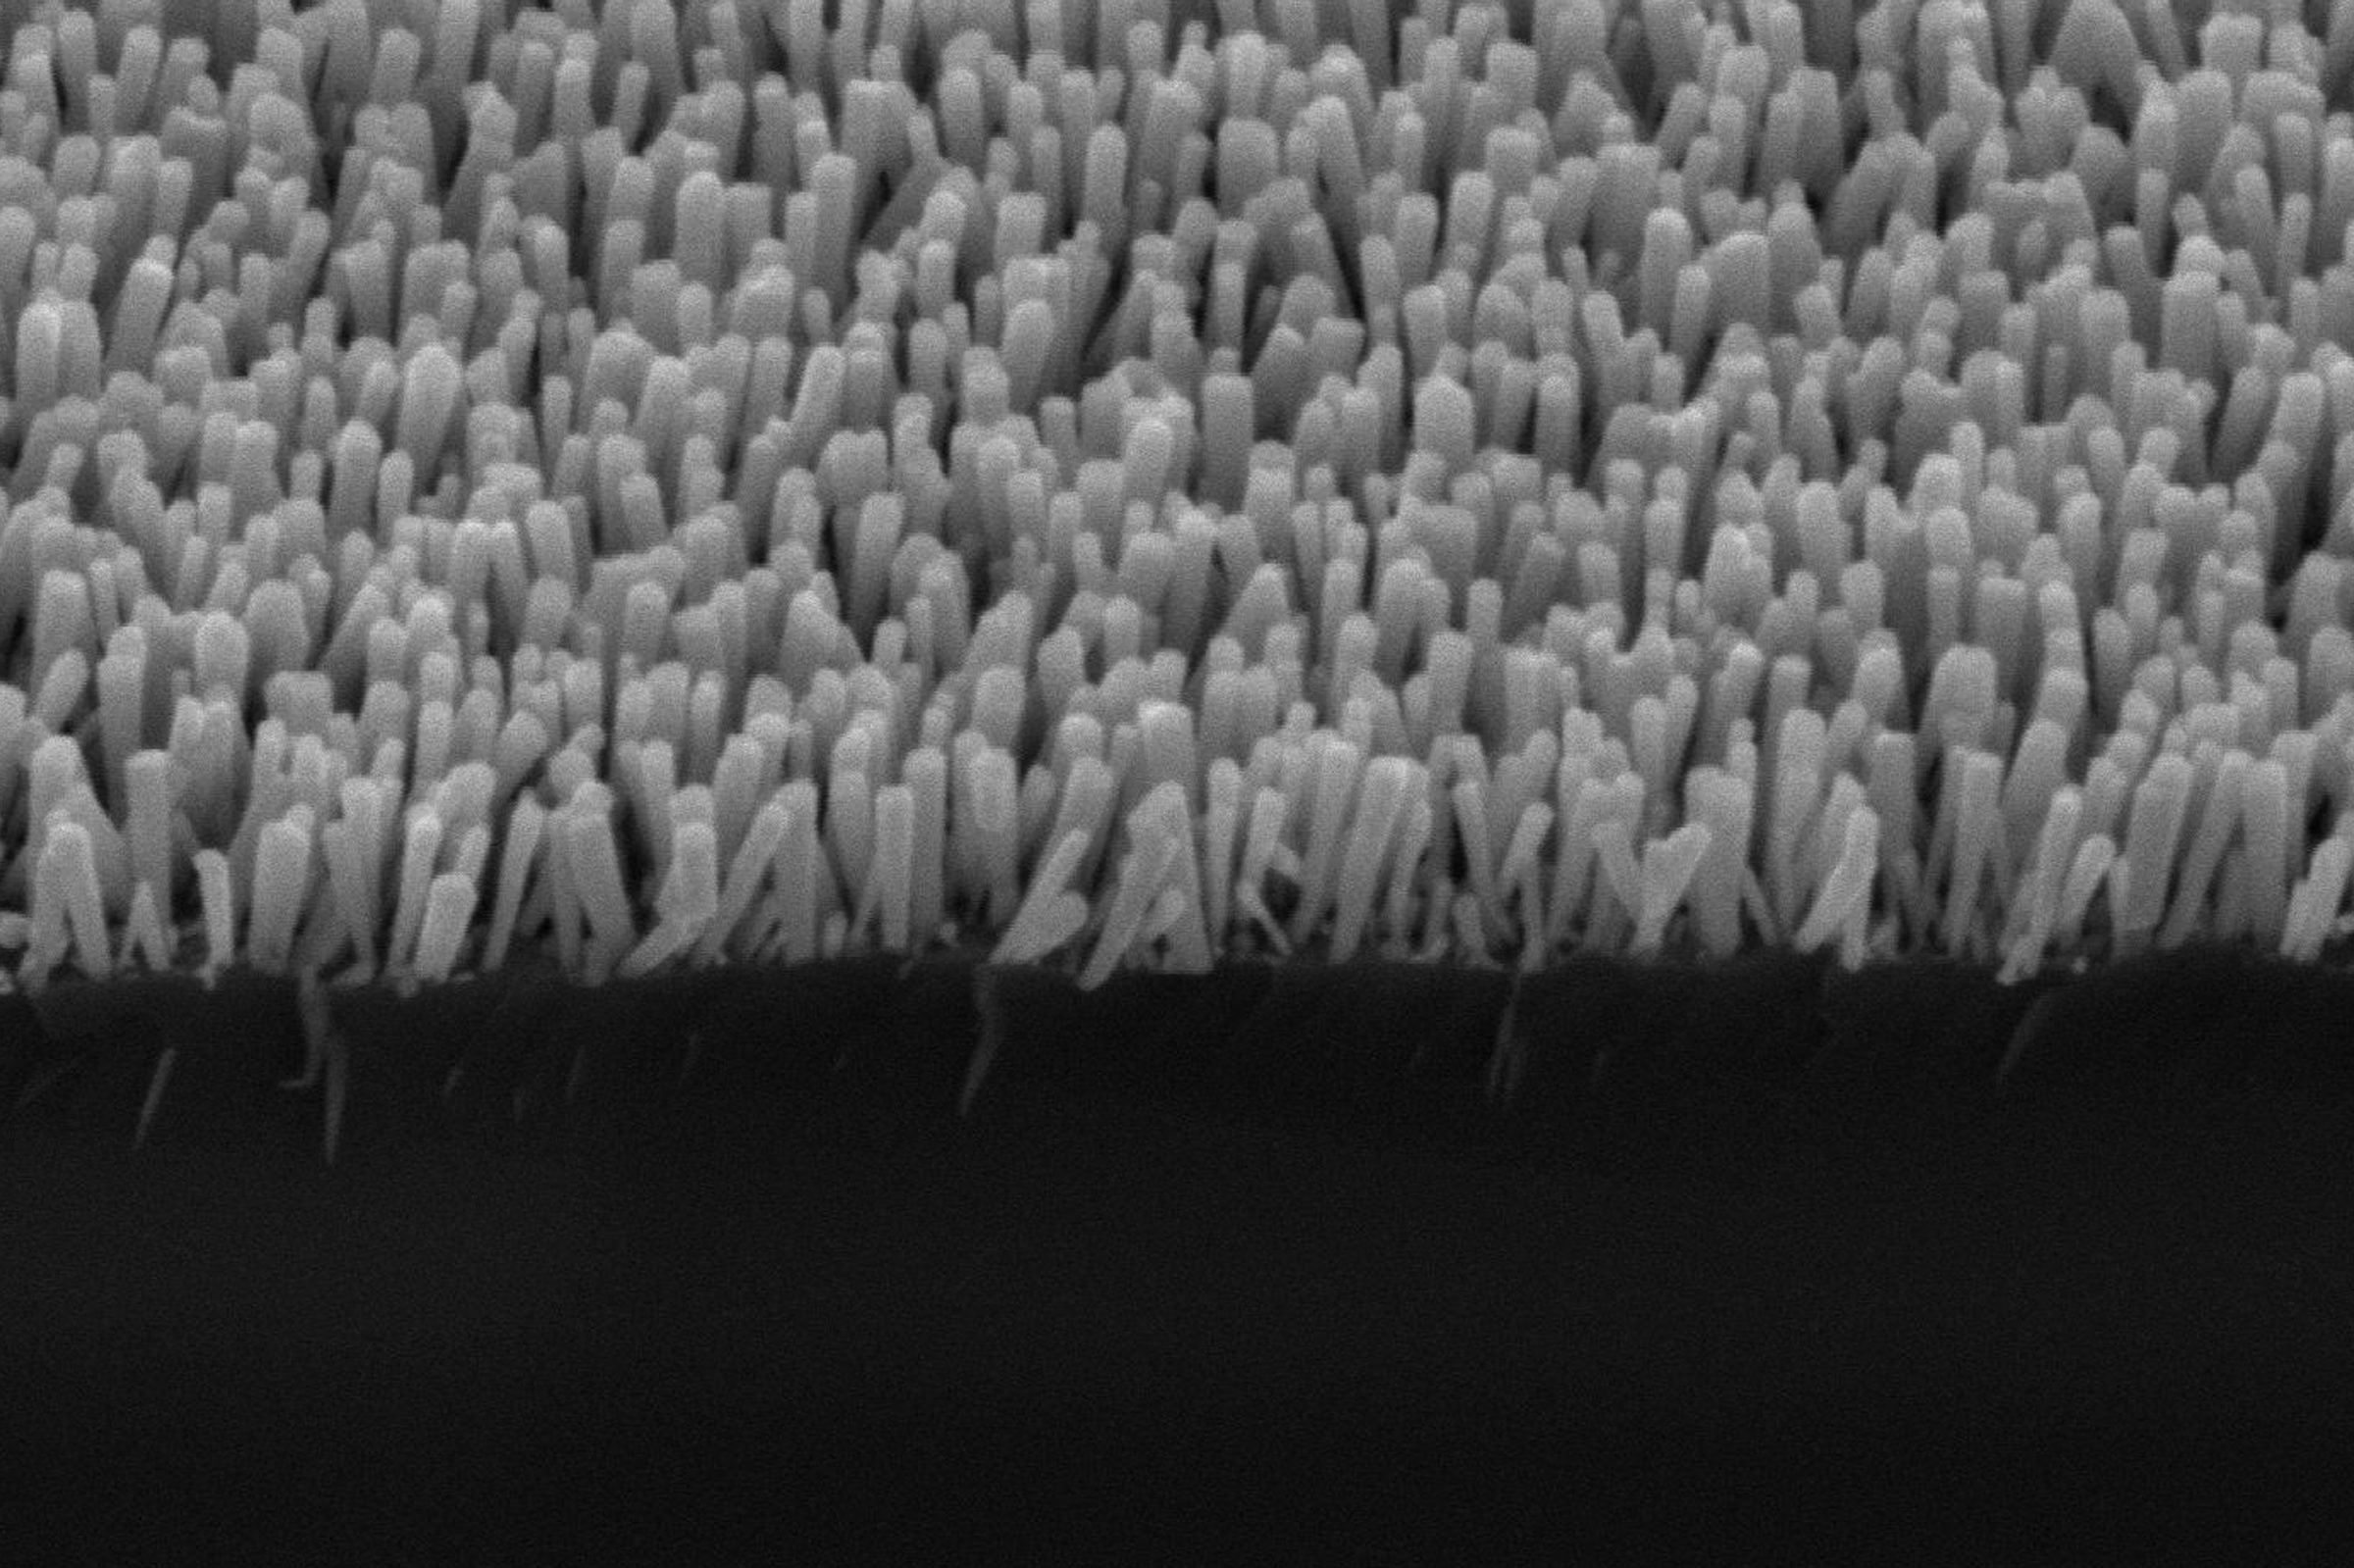 An electron microscope image shows the semiconductor nanowires. These deliver electrons to metal nanoparticles, which turn carbon dioxide and water into methane. Credit: Baowen Zhou, Mi Group, University of Michigan.